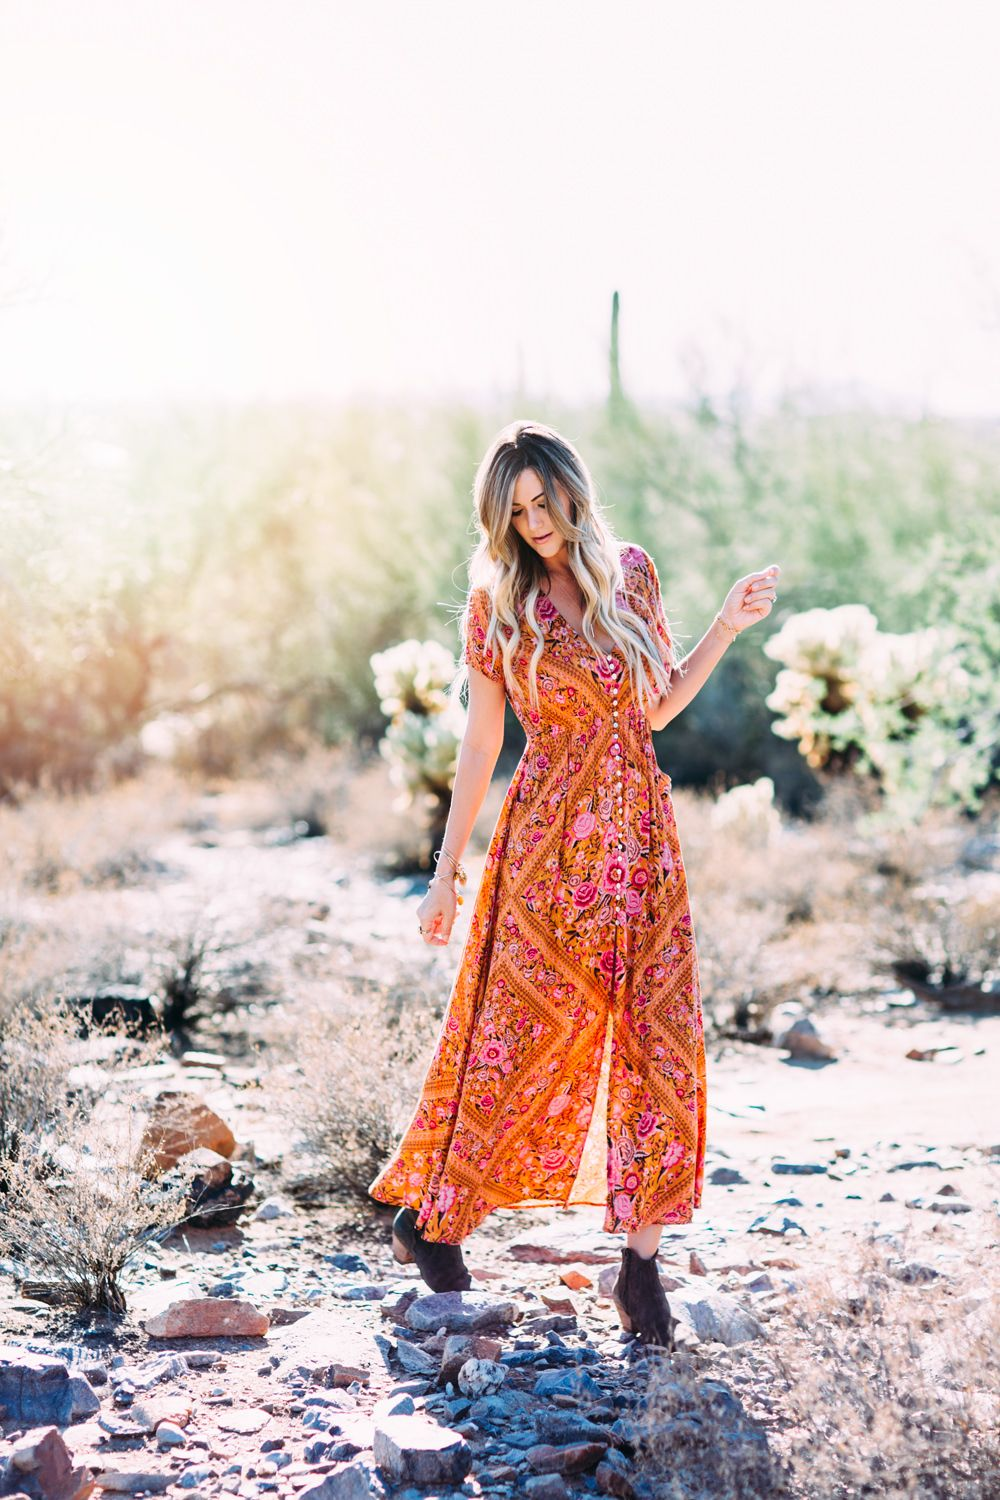 36aec2bcb85a41 Dash of Darling styles a bohemian vintage floral print button-front maxi  dress in the Arizona desert for a simple summer look.